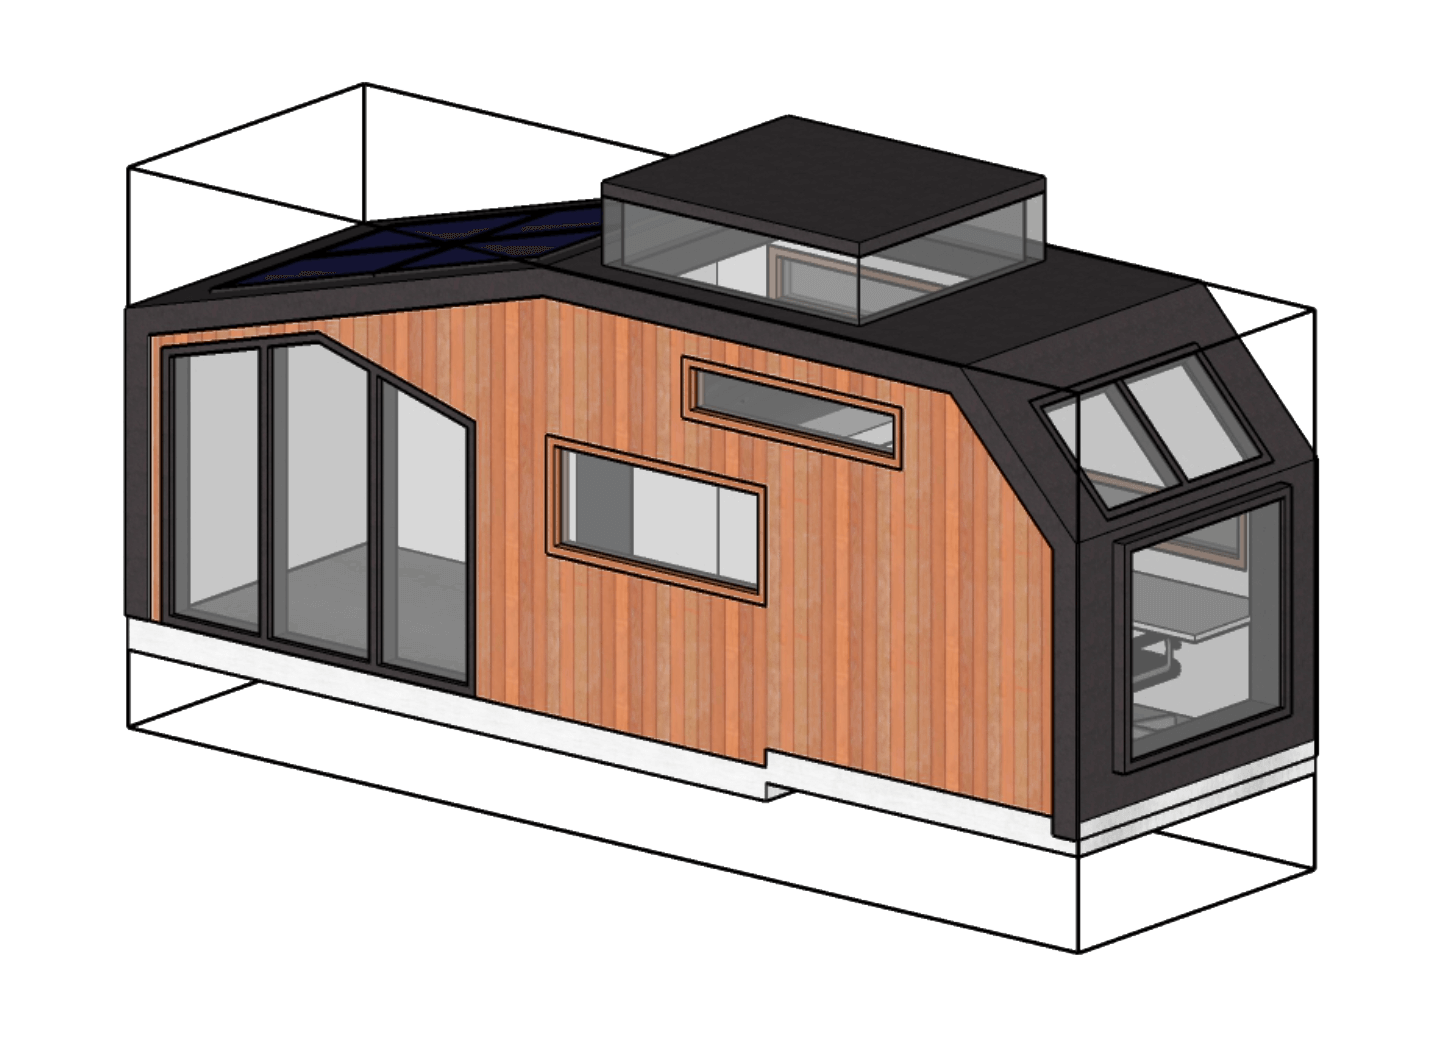 Tiny House sketch - Architect Peter Arts, by Zilla